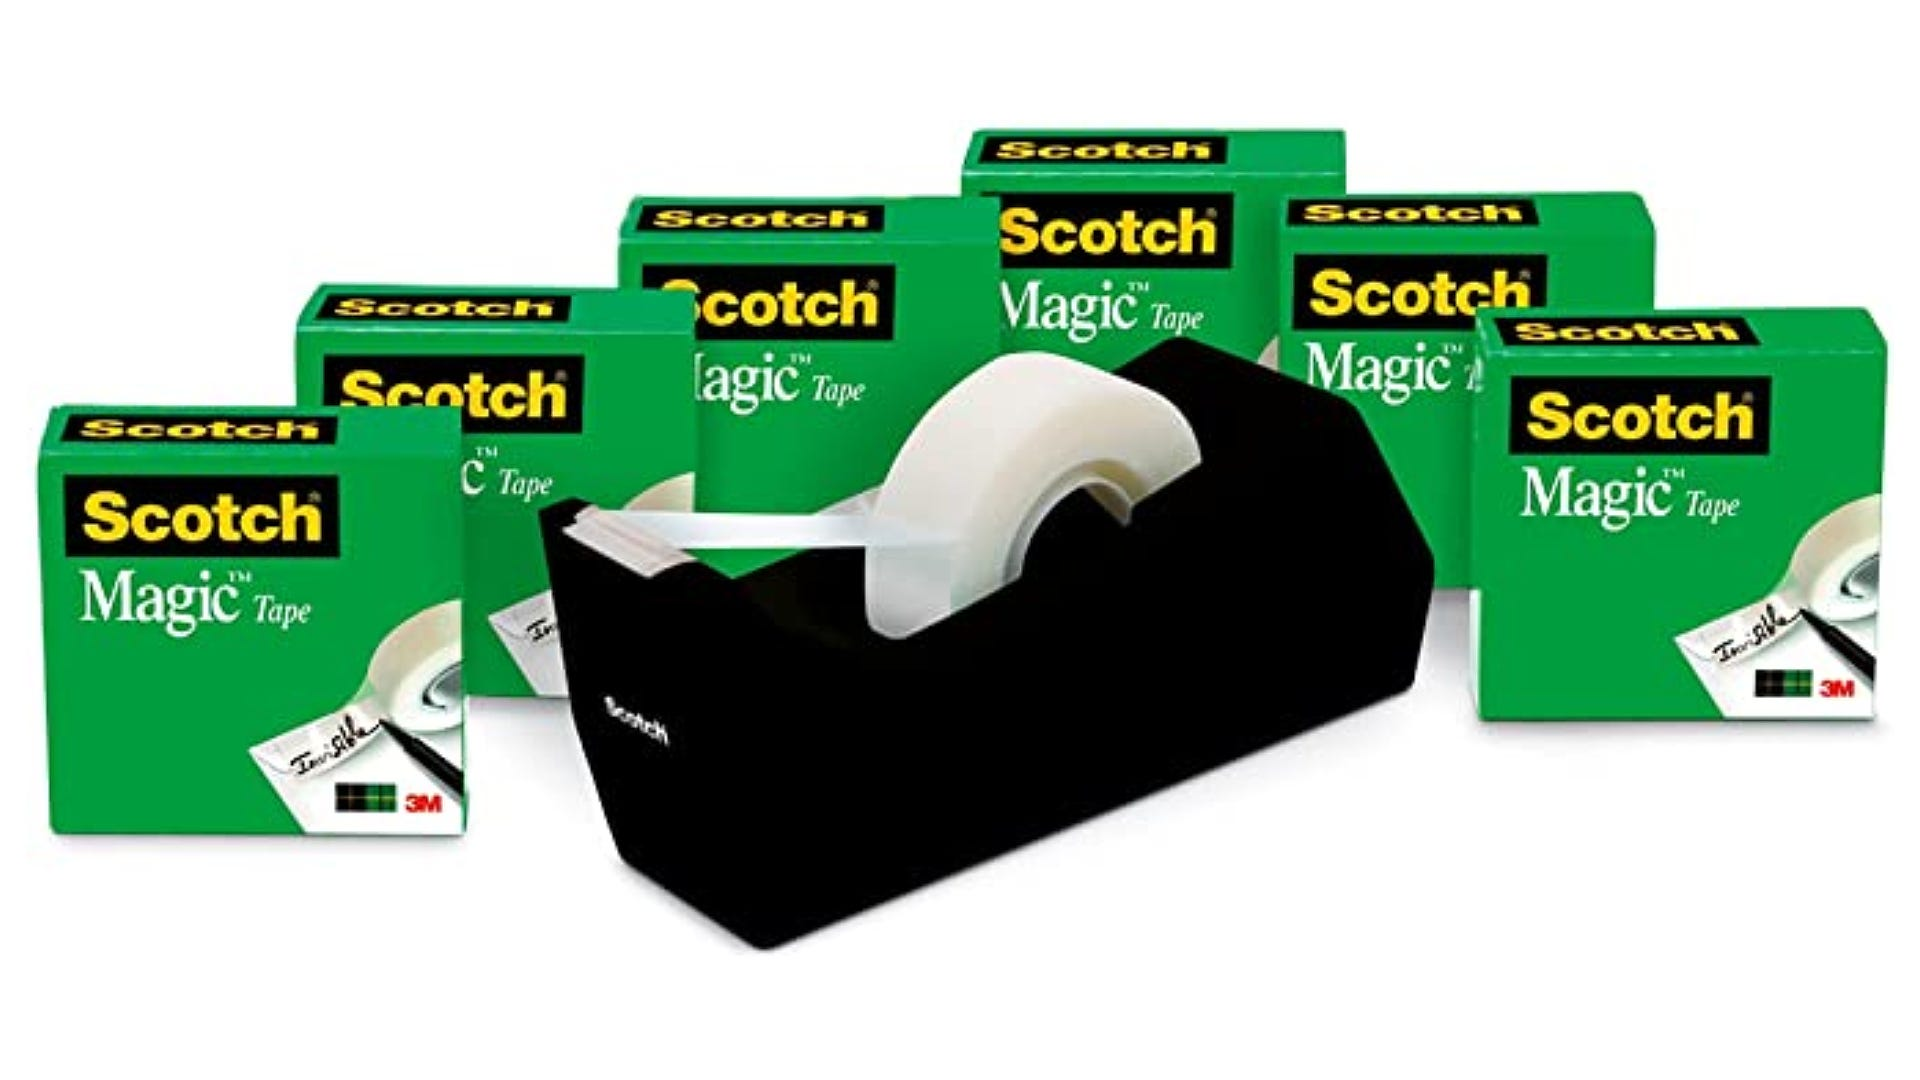 black tape dispenser with six green packs of Scotch tape